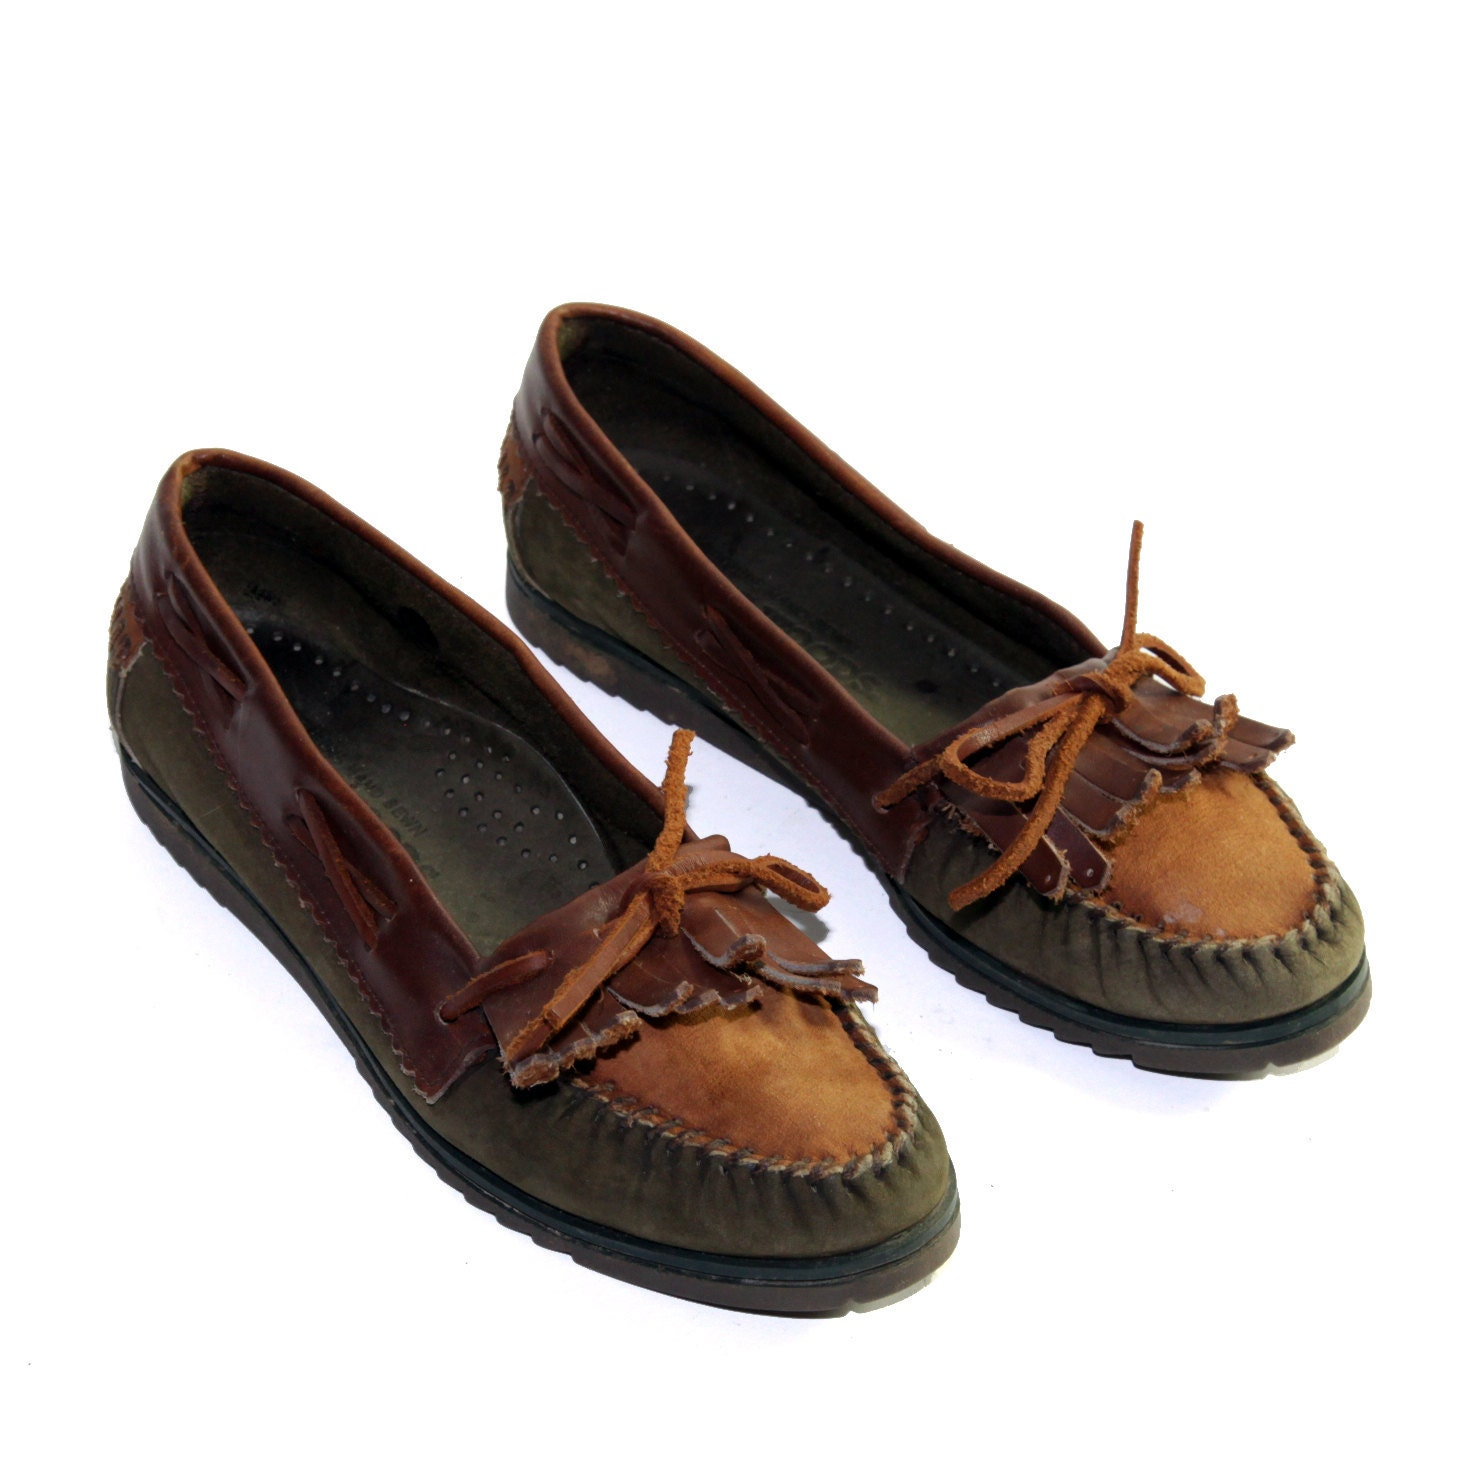 preppy s loafer boat shoes in woodland colors with